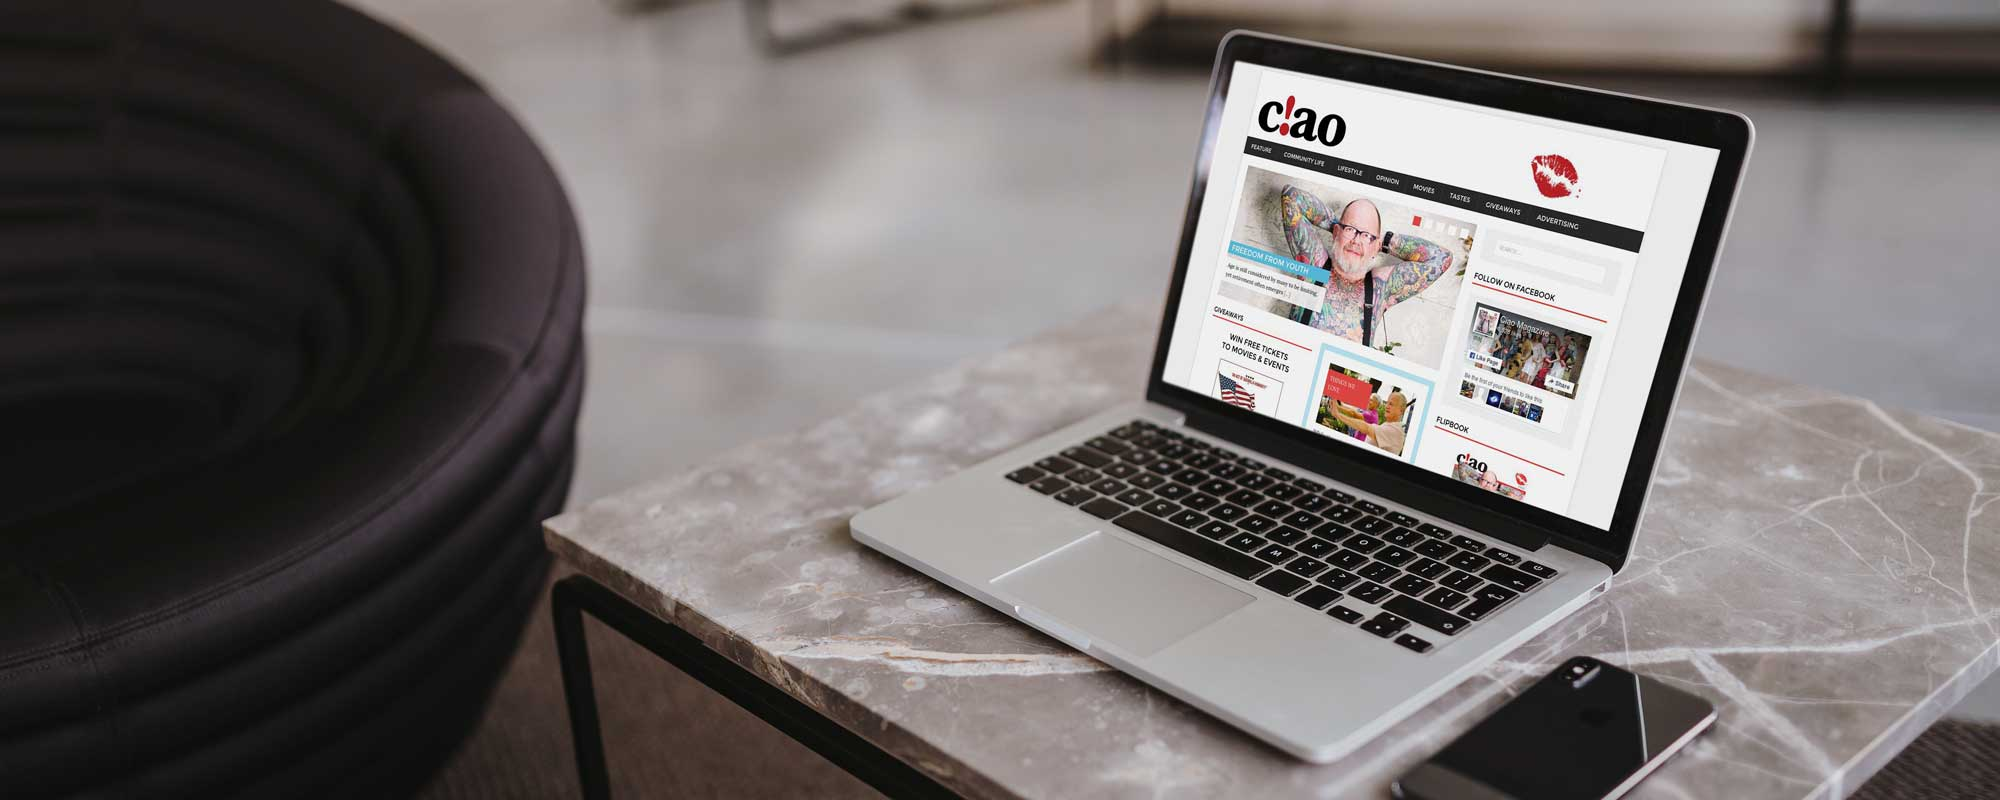 ciao magazine website design